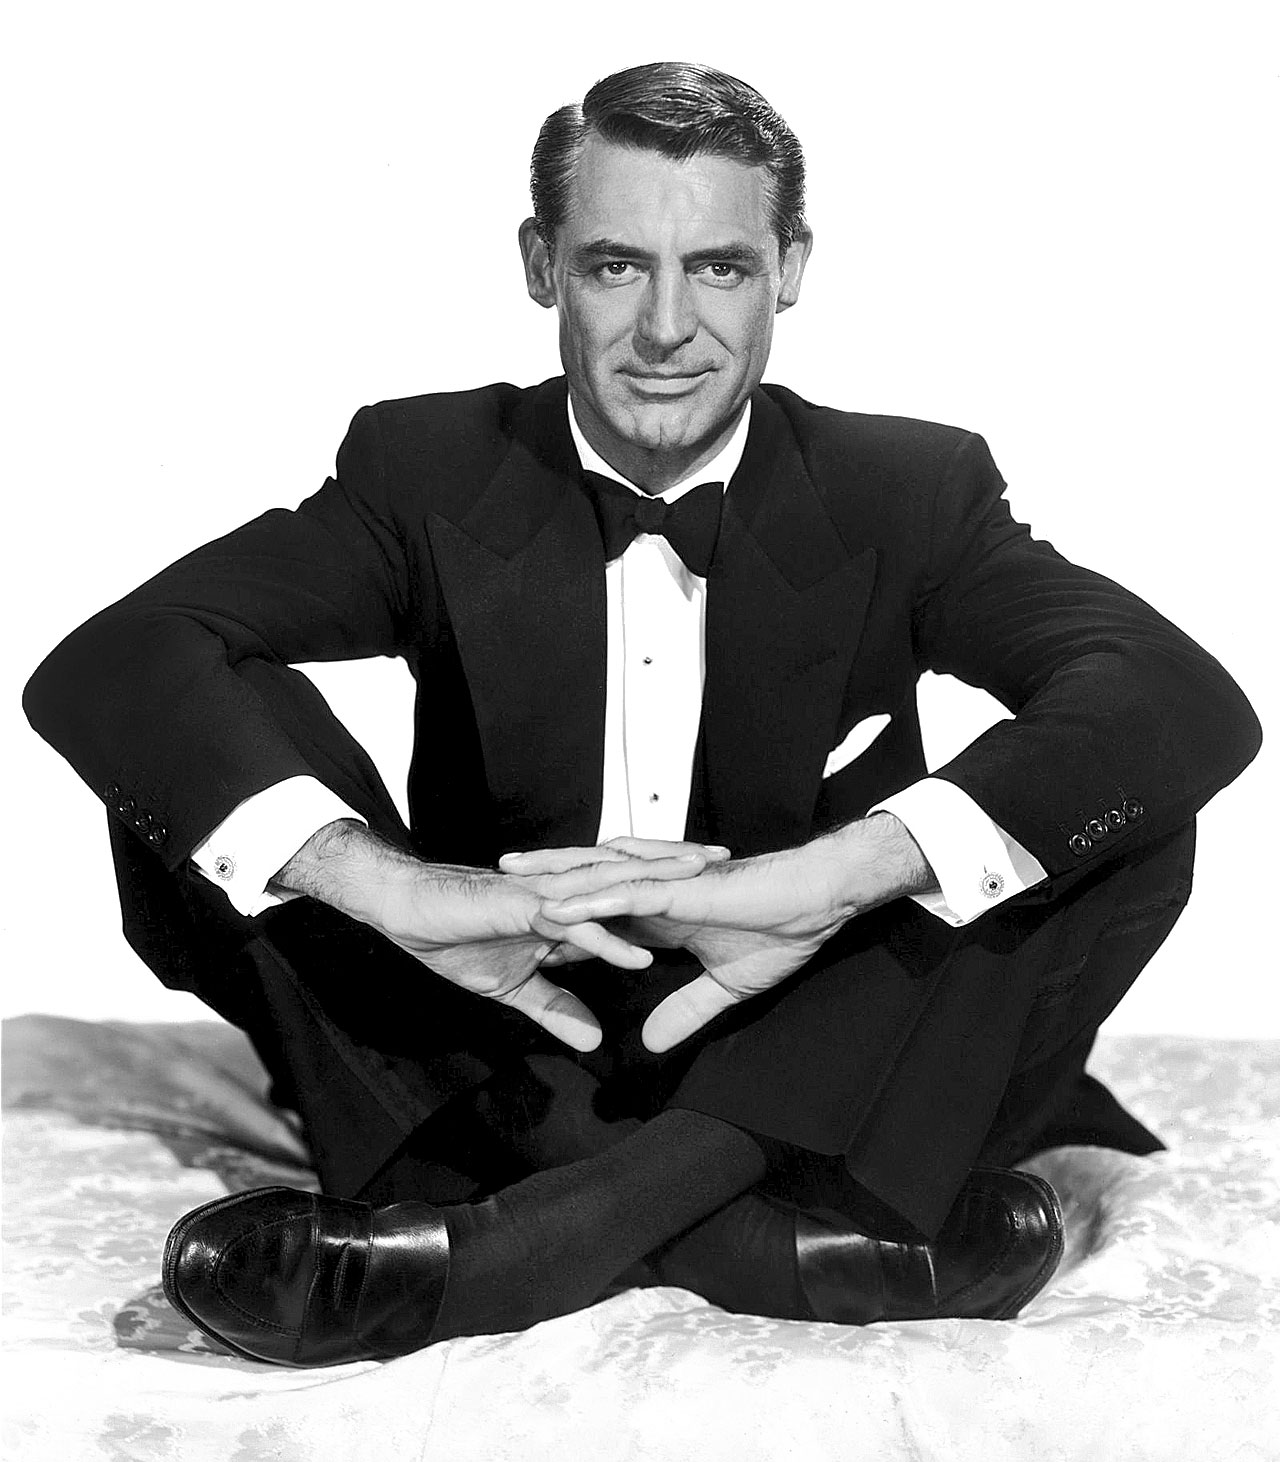 Cary-Grant-Sitting-Indian-Style-wearing-a-tuxedo